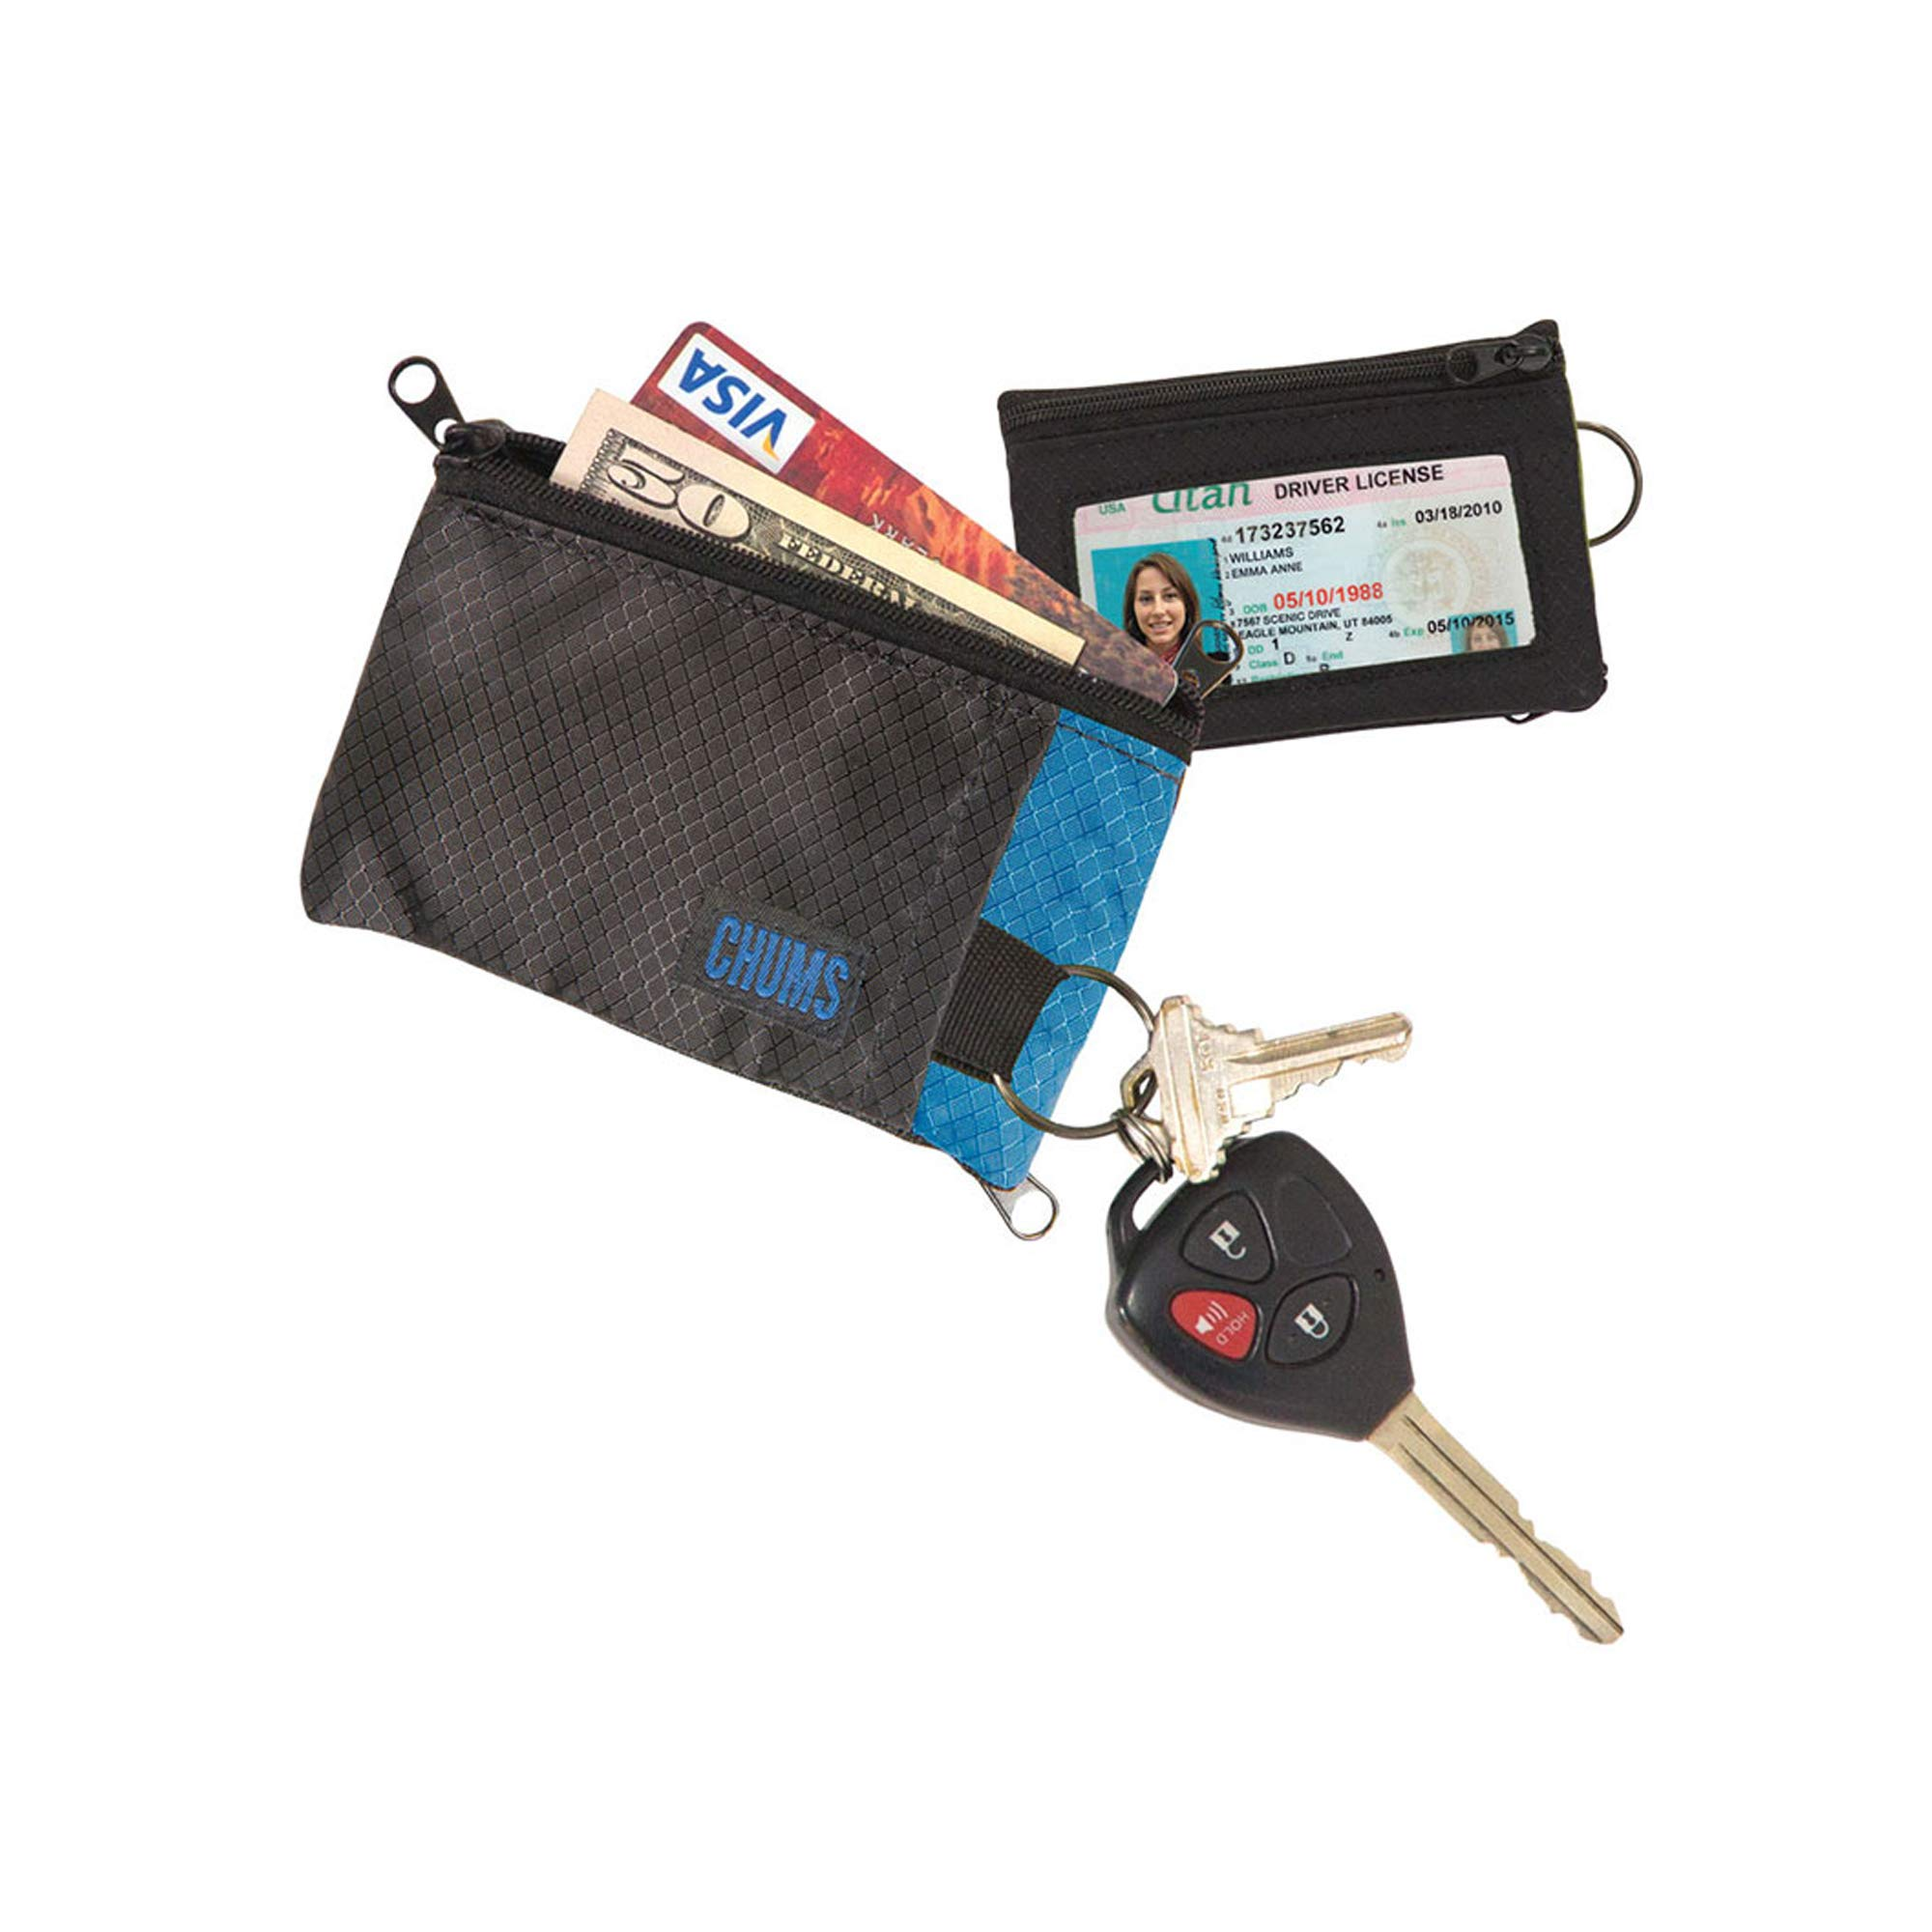 Chums Surfshort Wallet Ocean Blue